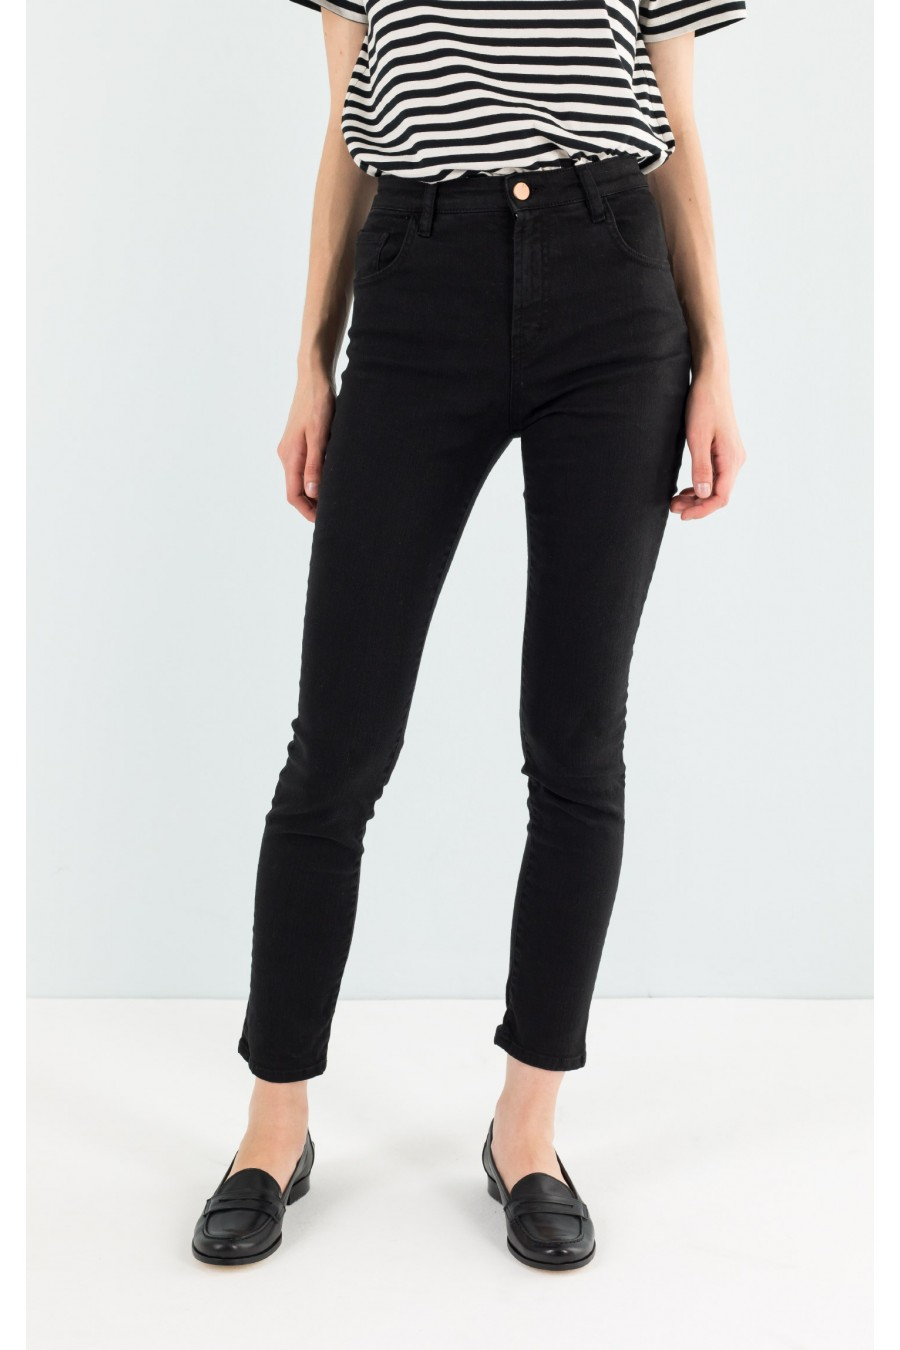 Slim off black jeans